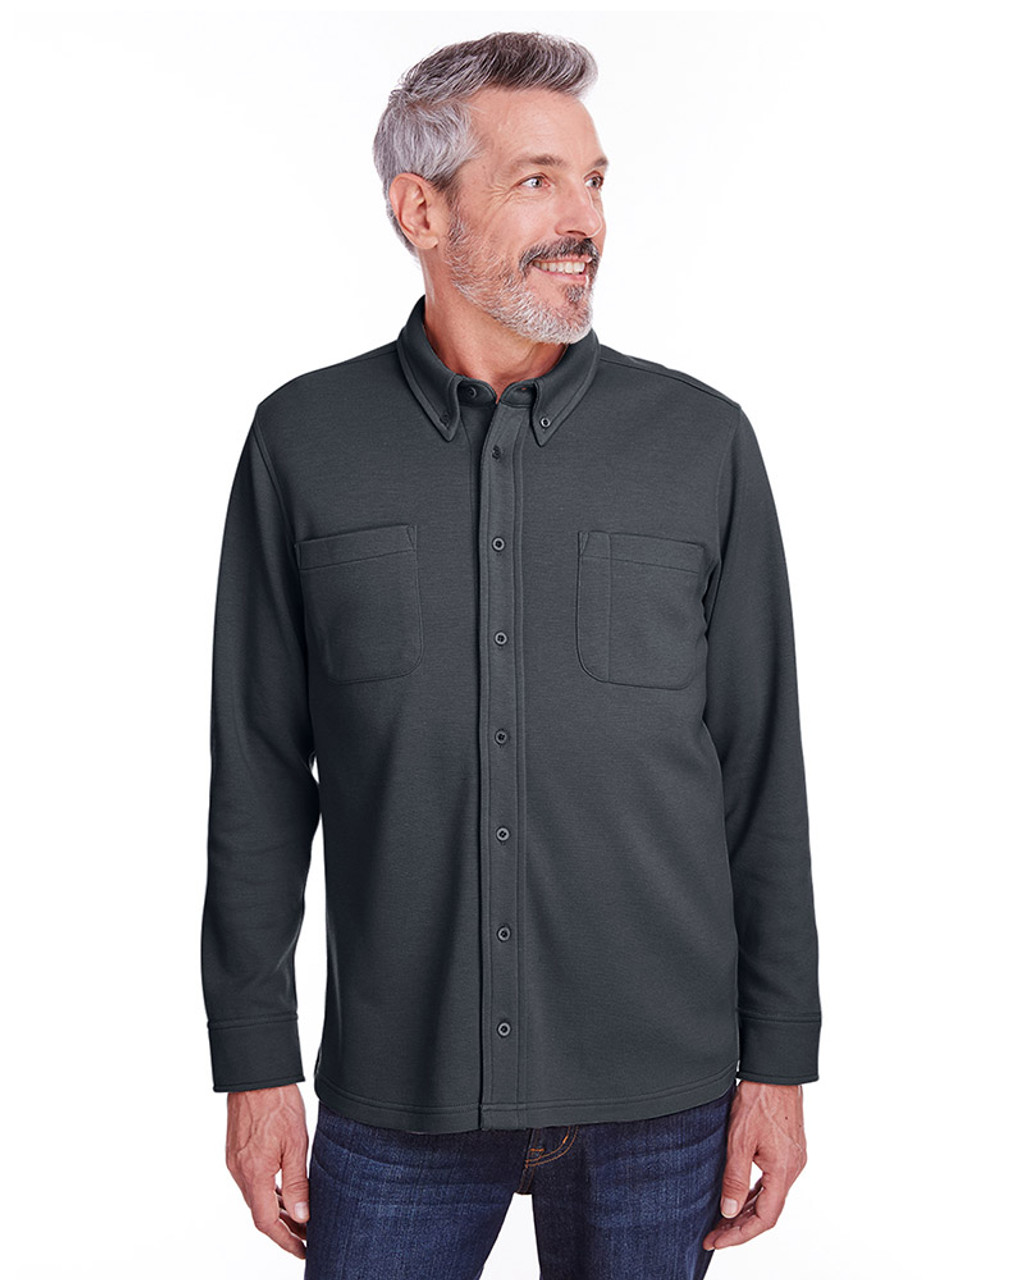 Dark Charcoal - M708 Harriton Adult StainBloc™ Pique Fleece Shirt-Jacket | Blankclothing.ca